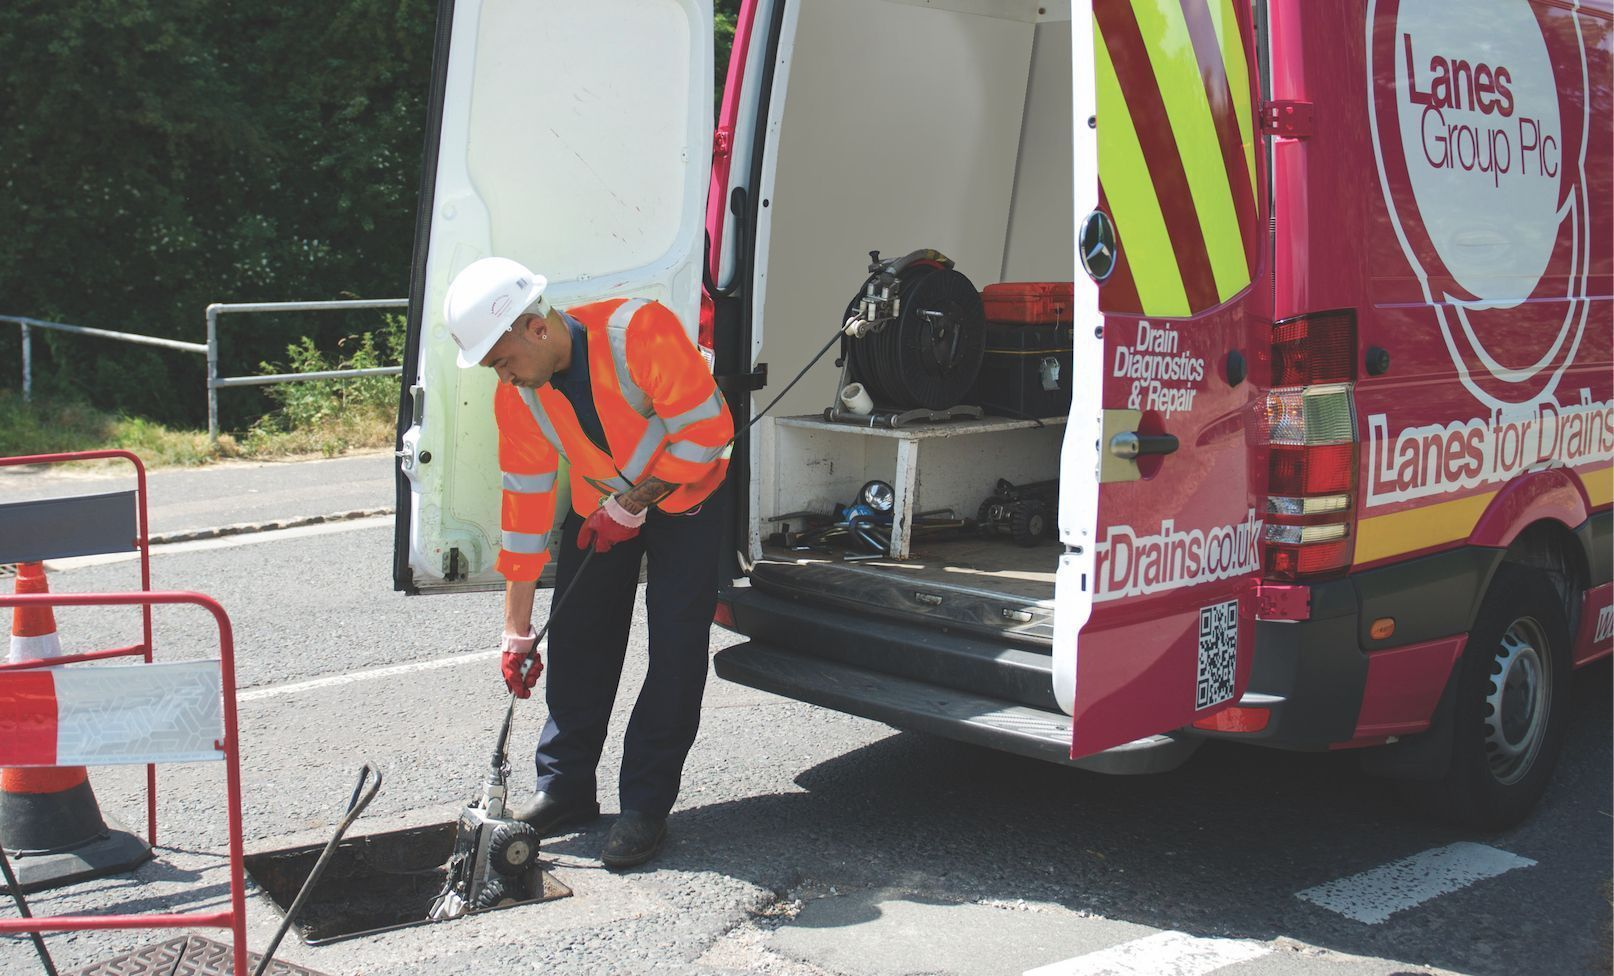 Lanes Group engineer standing beside a Lanes Group van carrying out a CCTV survey of a sewer beneath the road